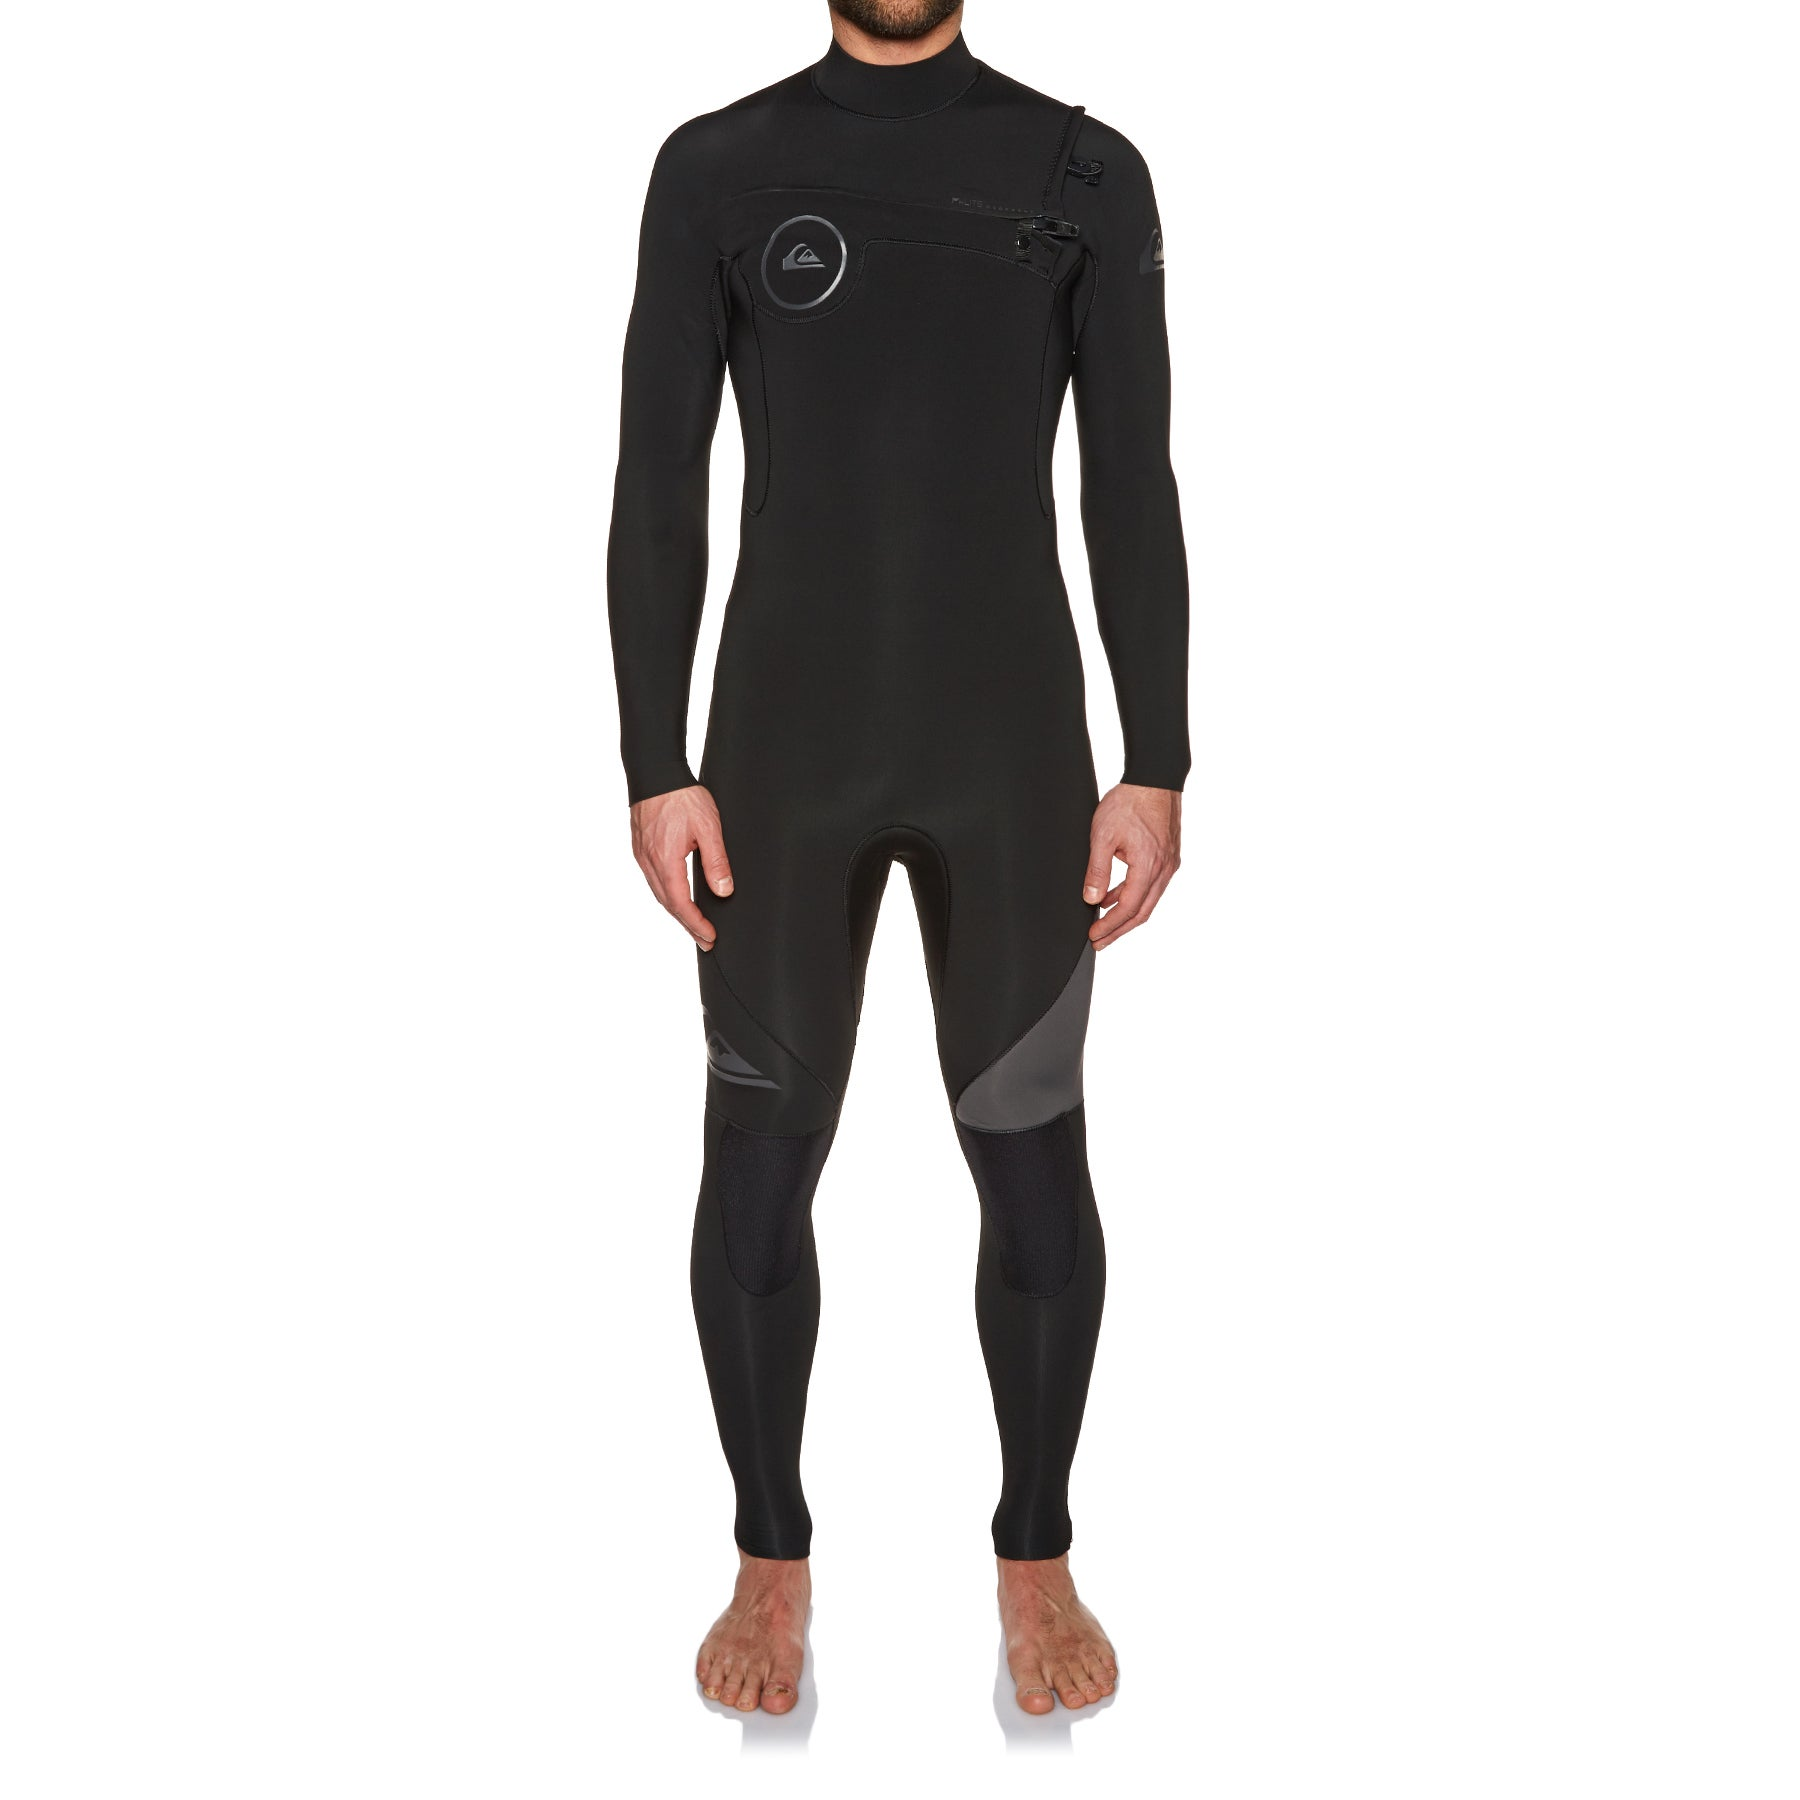 Quiksilver Syncro 3/2mm 2018 Chest Zip Wetsuit - Jet Black